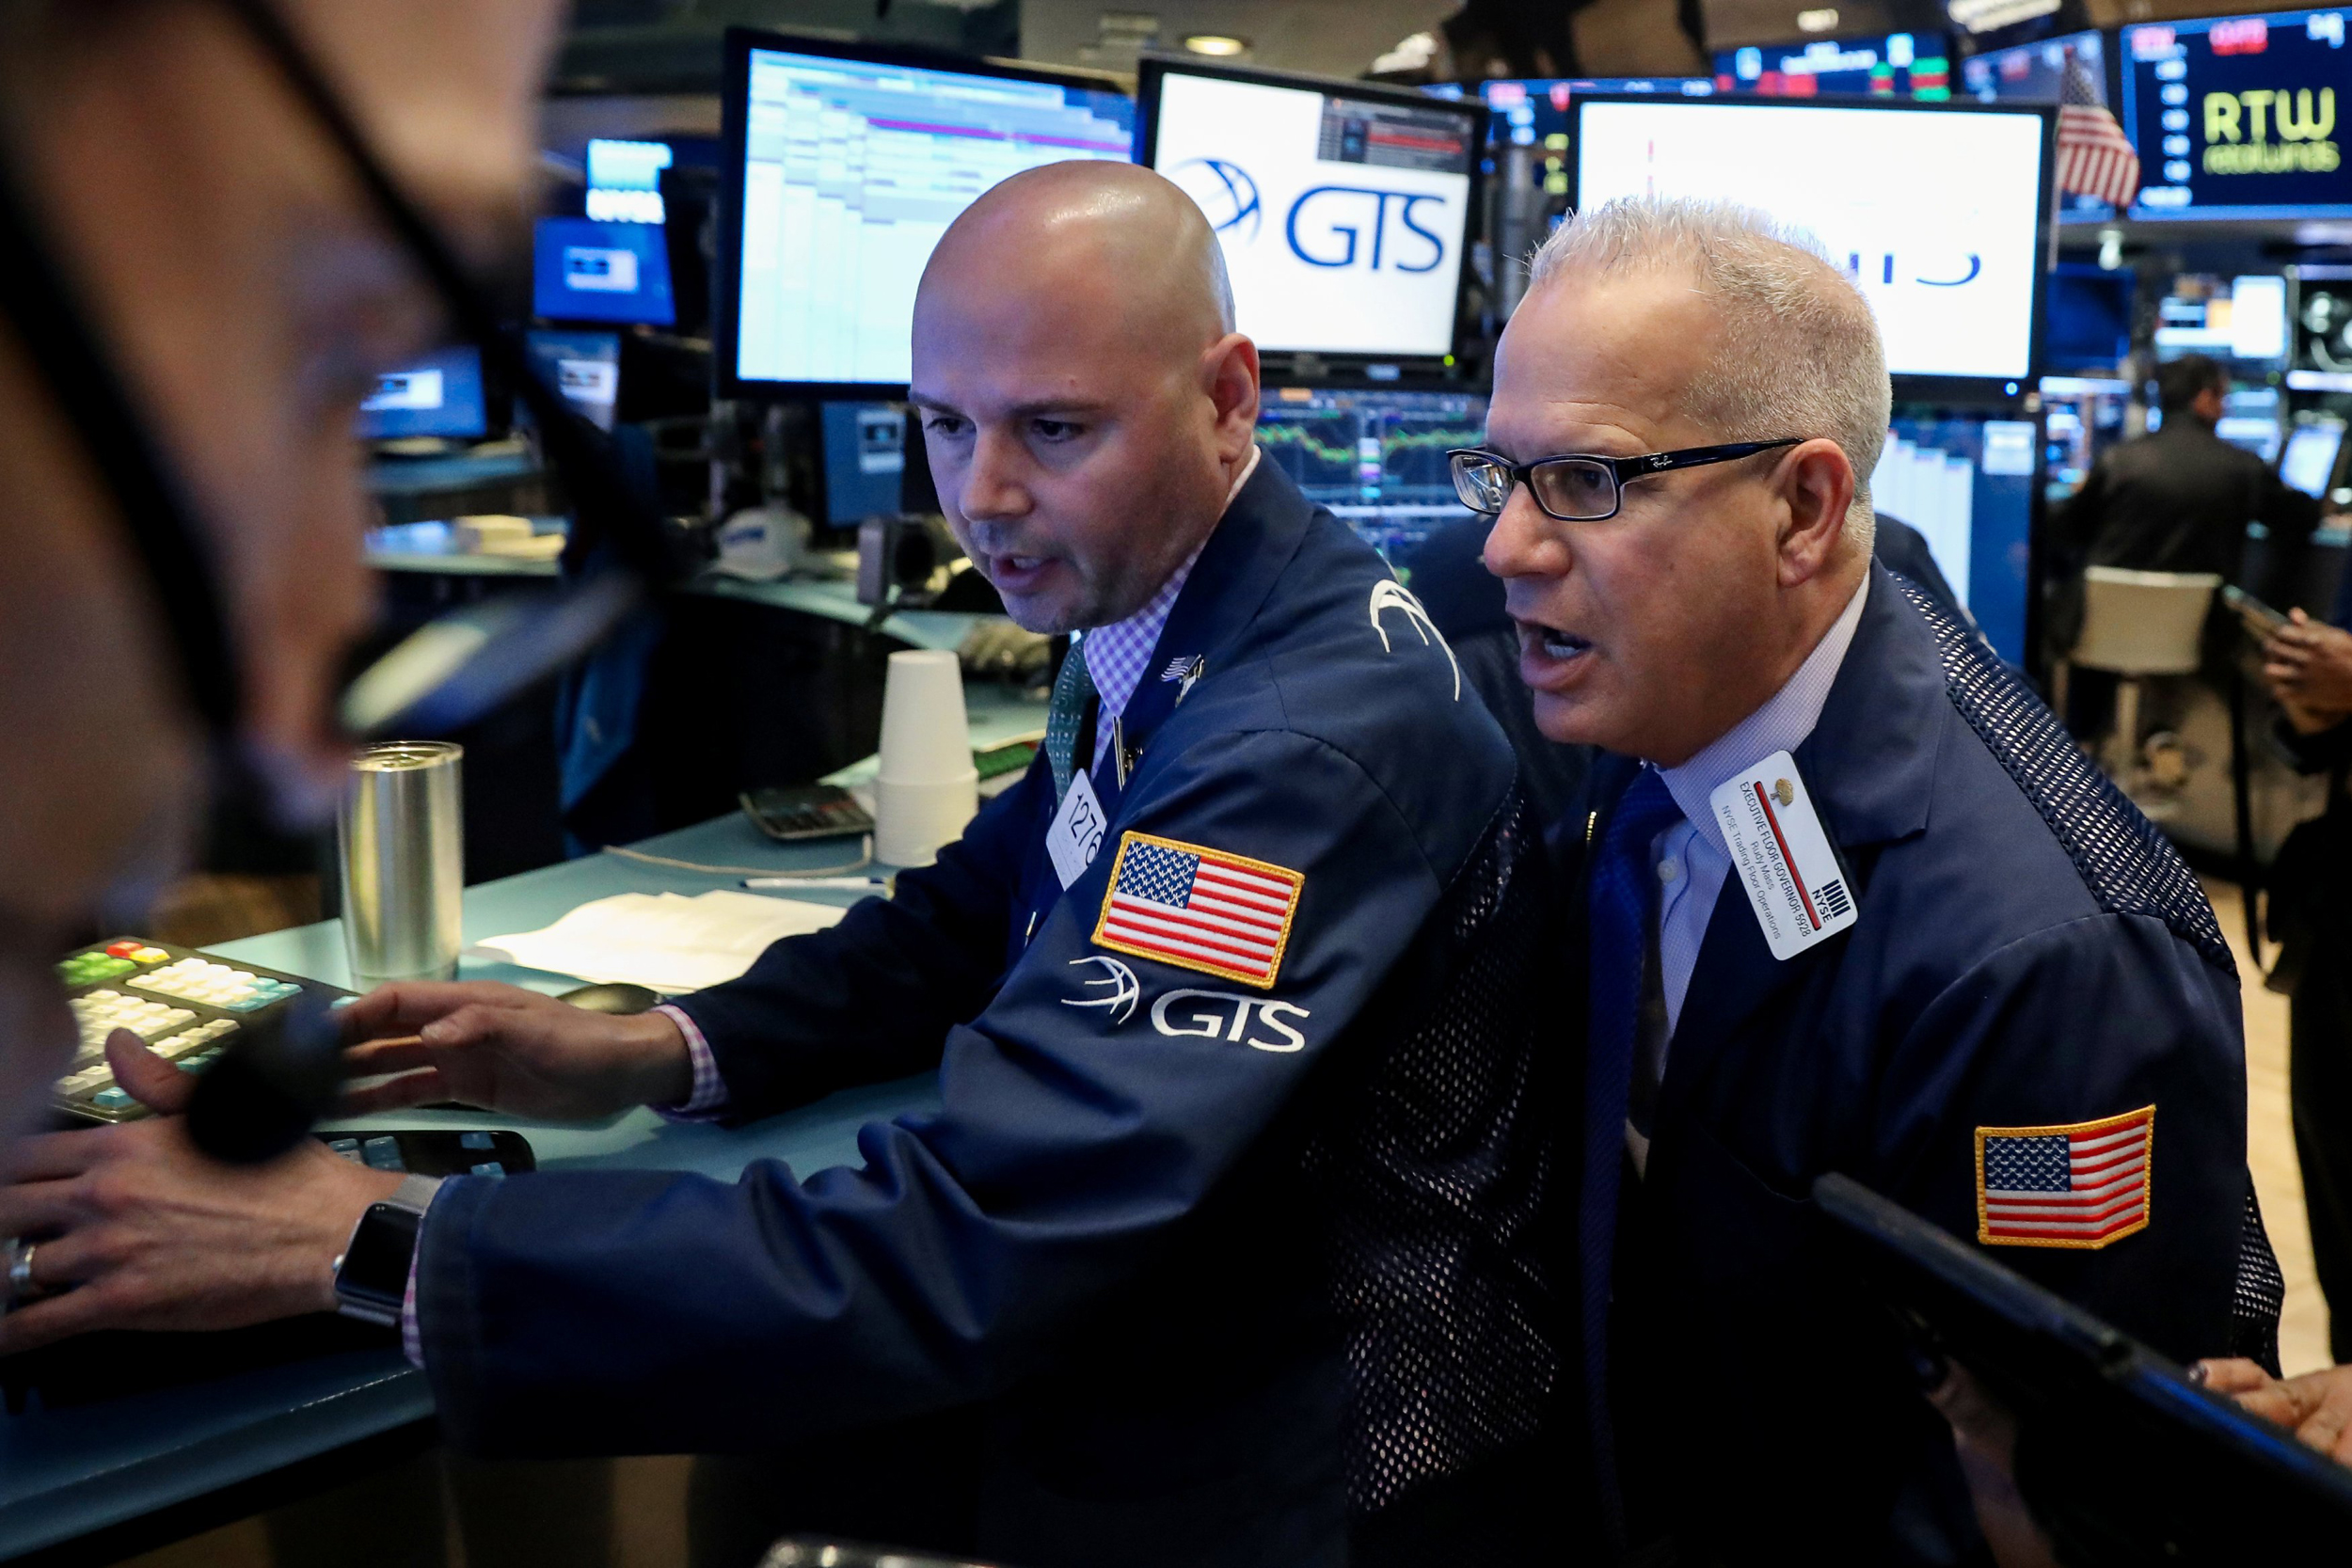 nbcnews.com - Market gains for 2018 wiped out by plunging stocks